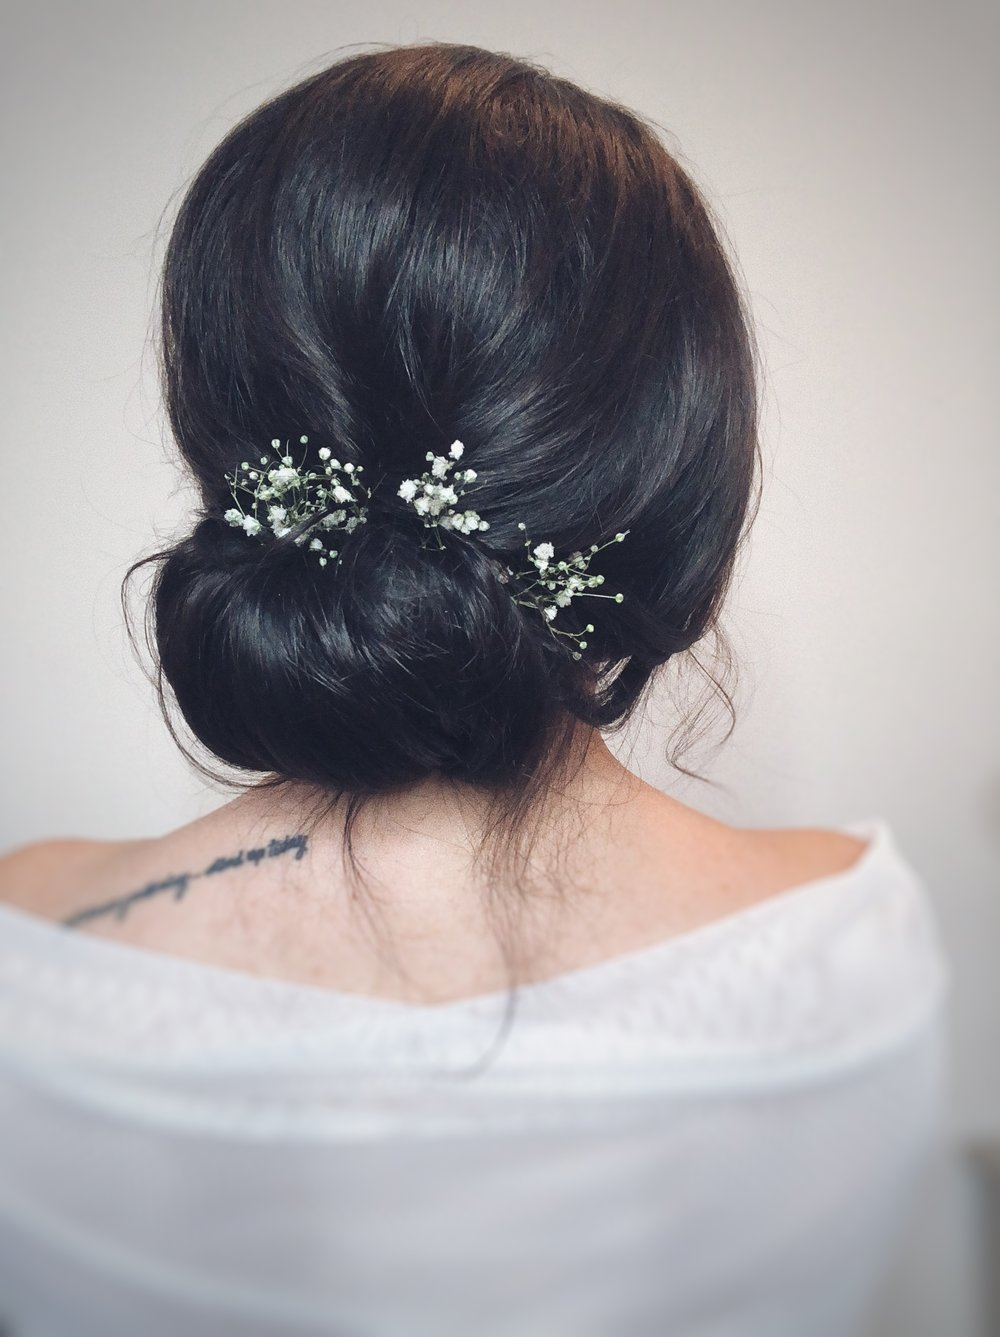 low bun wedding hairstyle updo idea with babysbreath